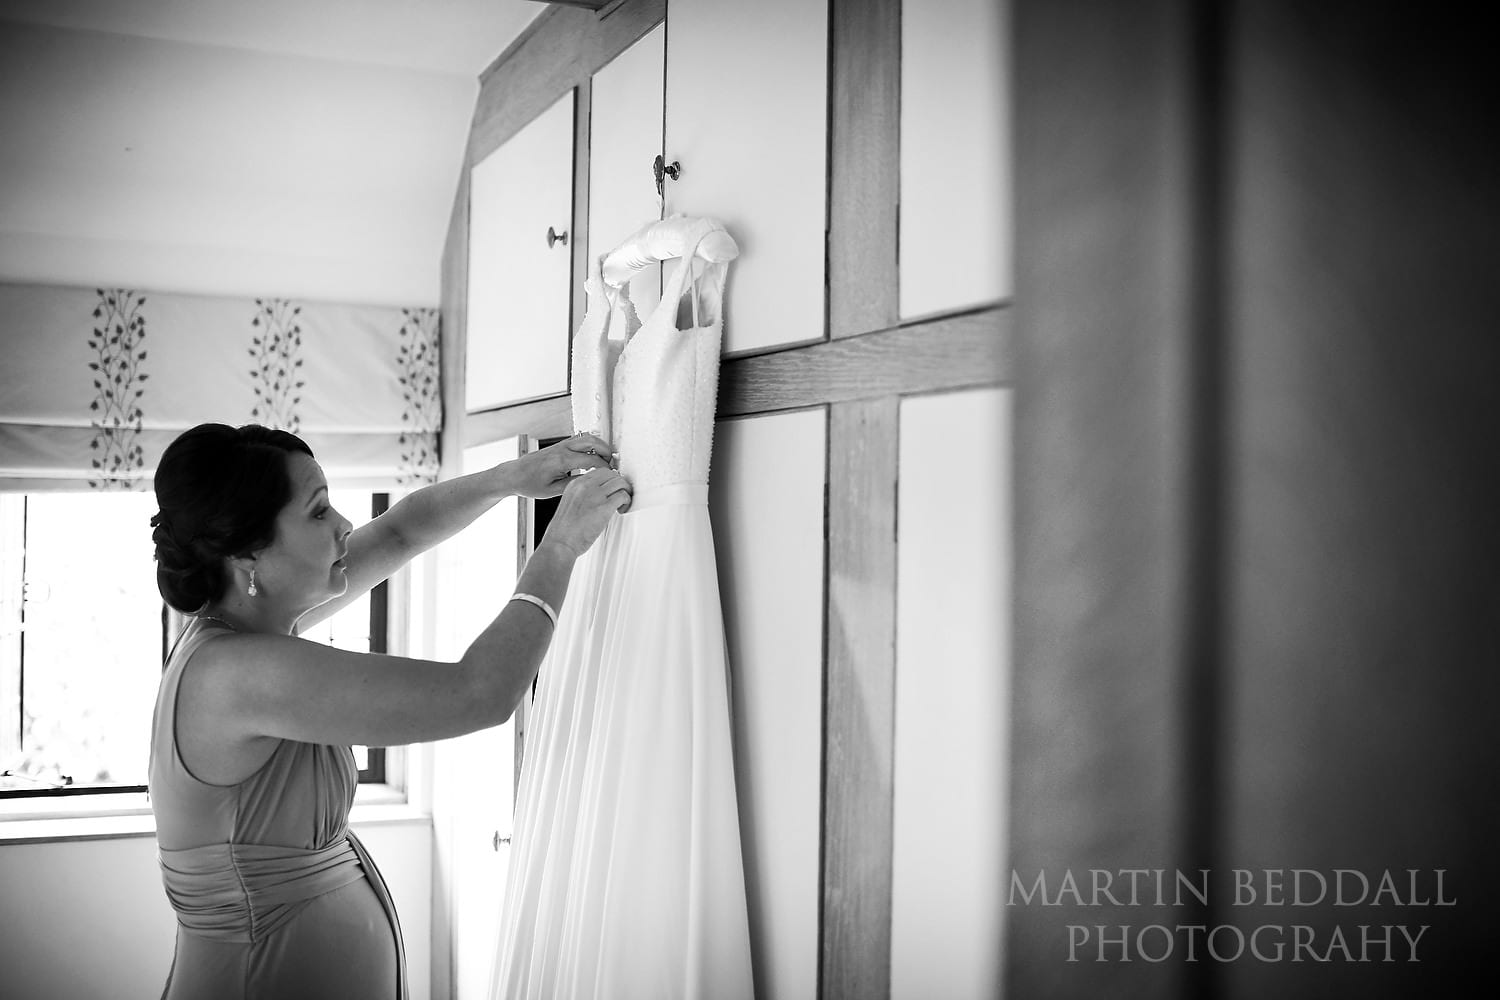 Sorting out the wedding dress